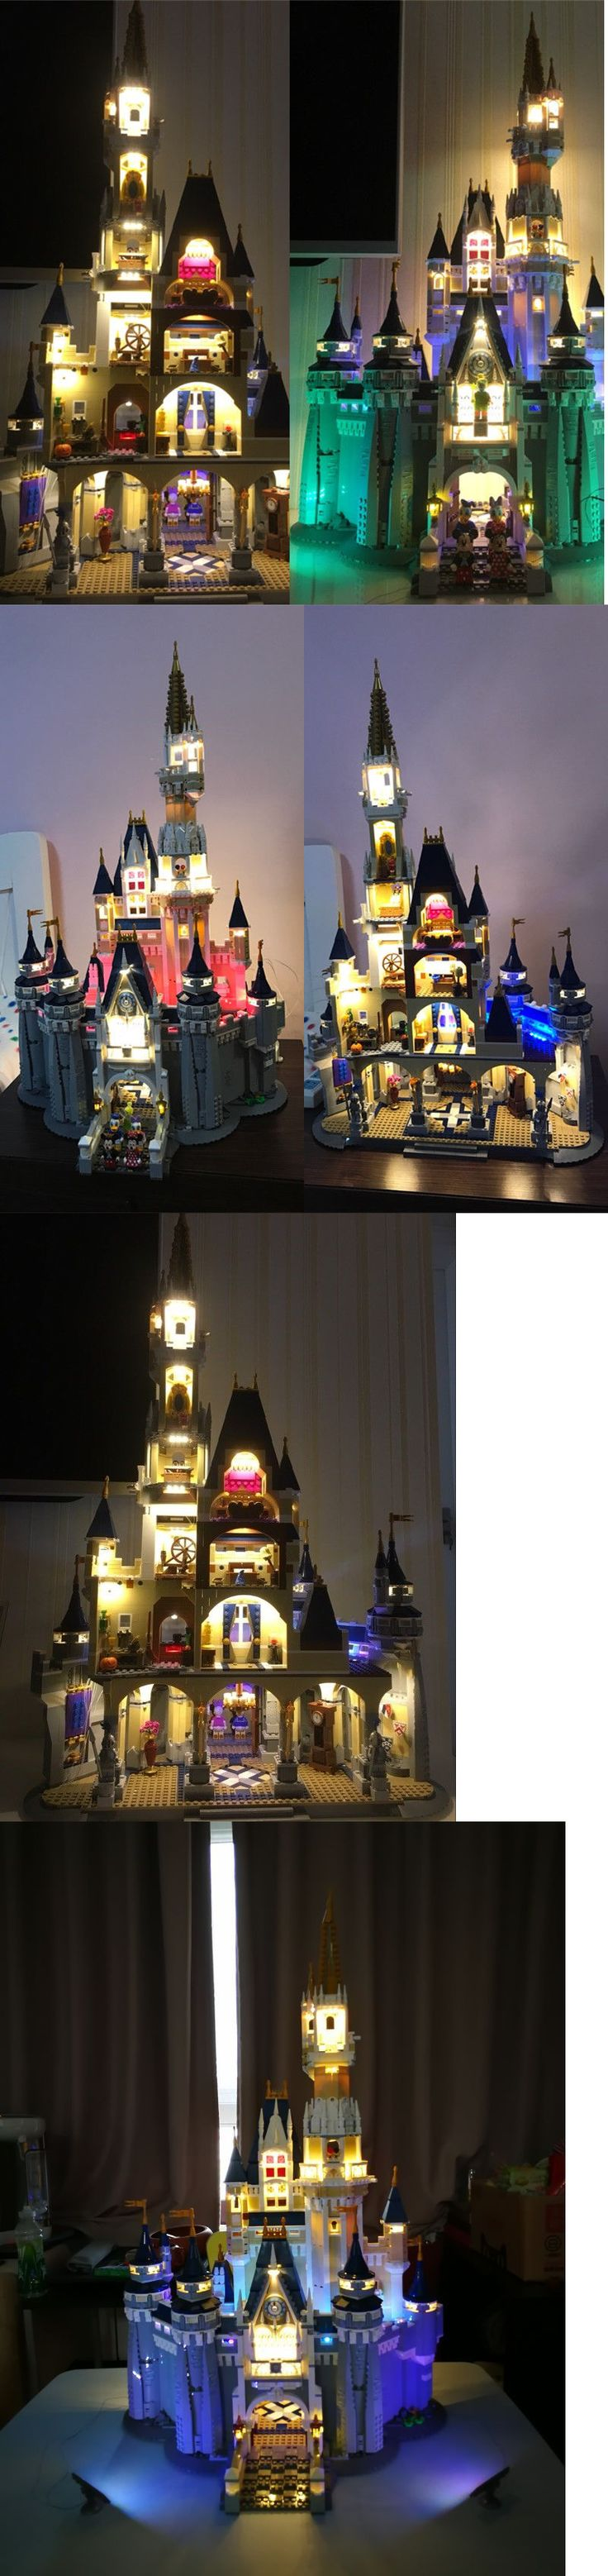 LEGO Branded Storage 183450: New Led Light Kit For Lego Disney Castle 71040 Usb Powered 2017 -> BUY IT NOW ONLY: $155.55 on eBay!